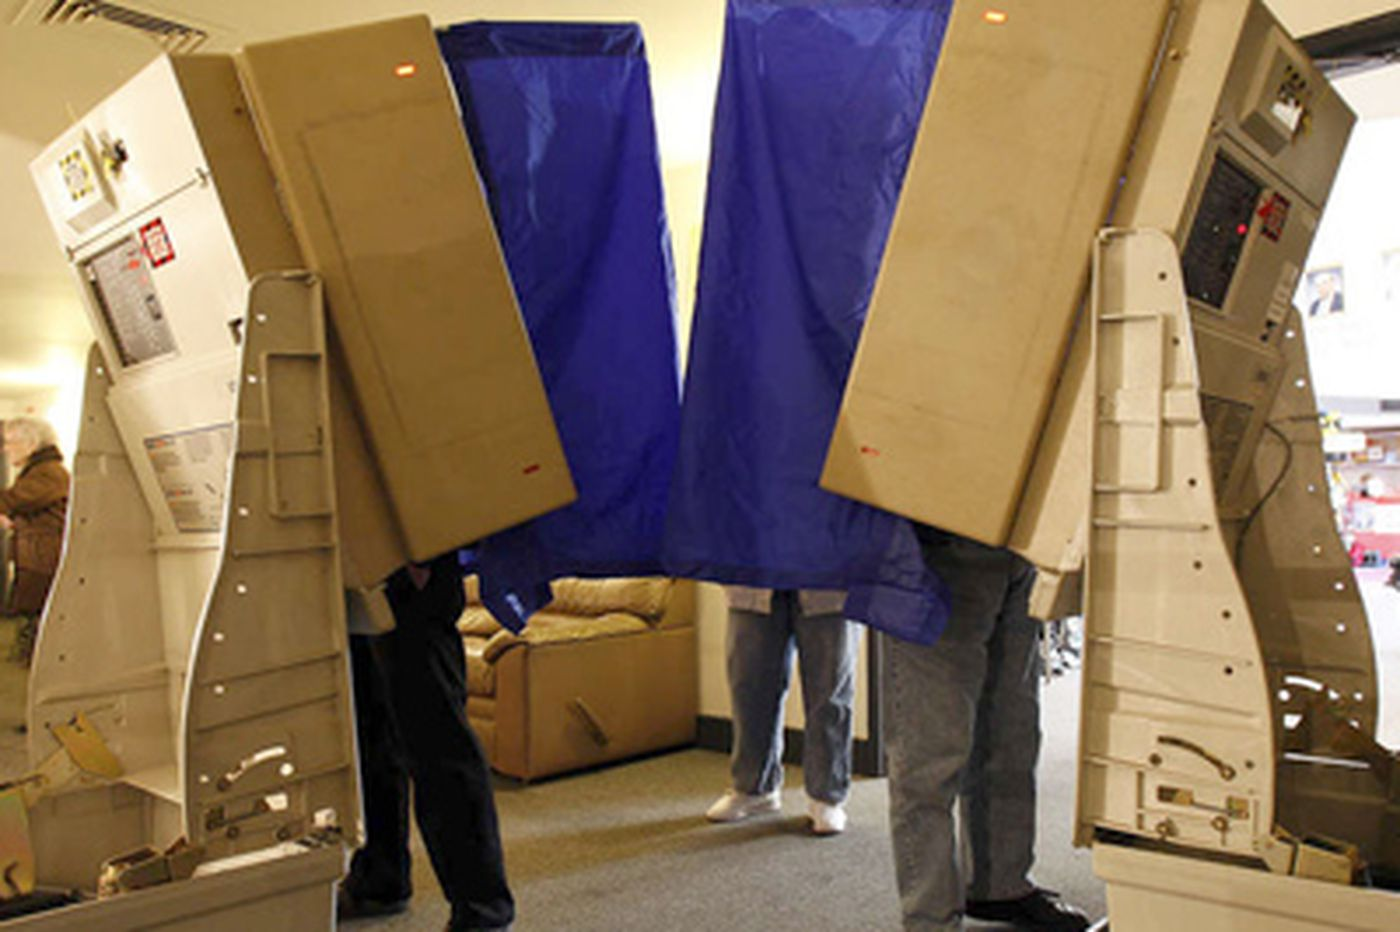 DN Editorial: Don't be fooled:You can vote Nov. 6, even without a photo ID